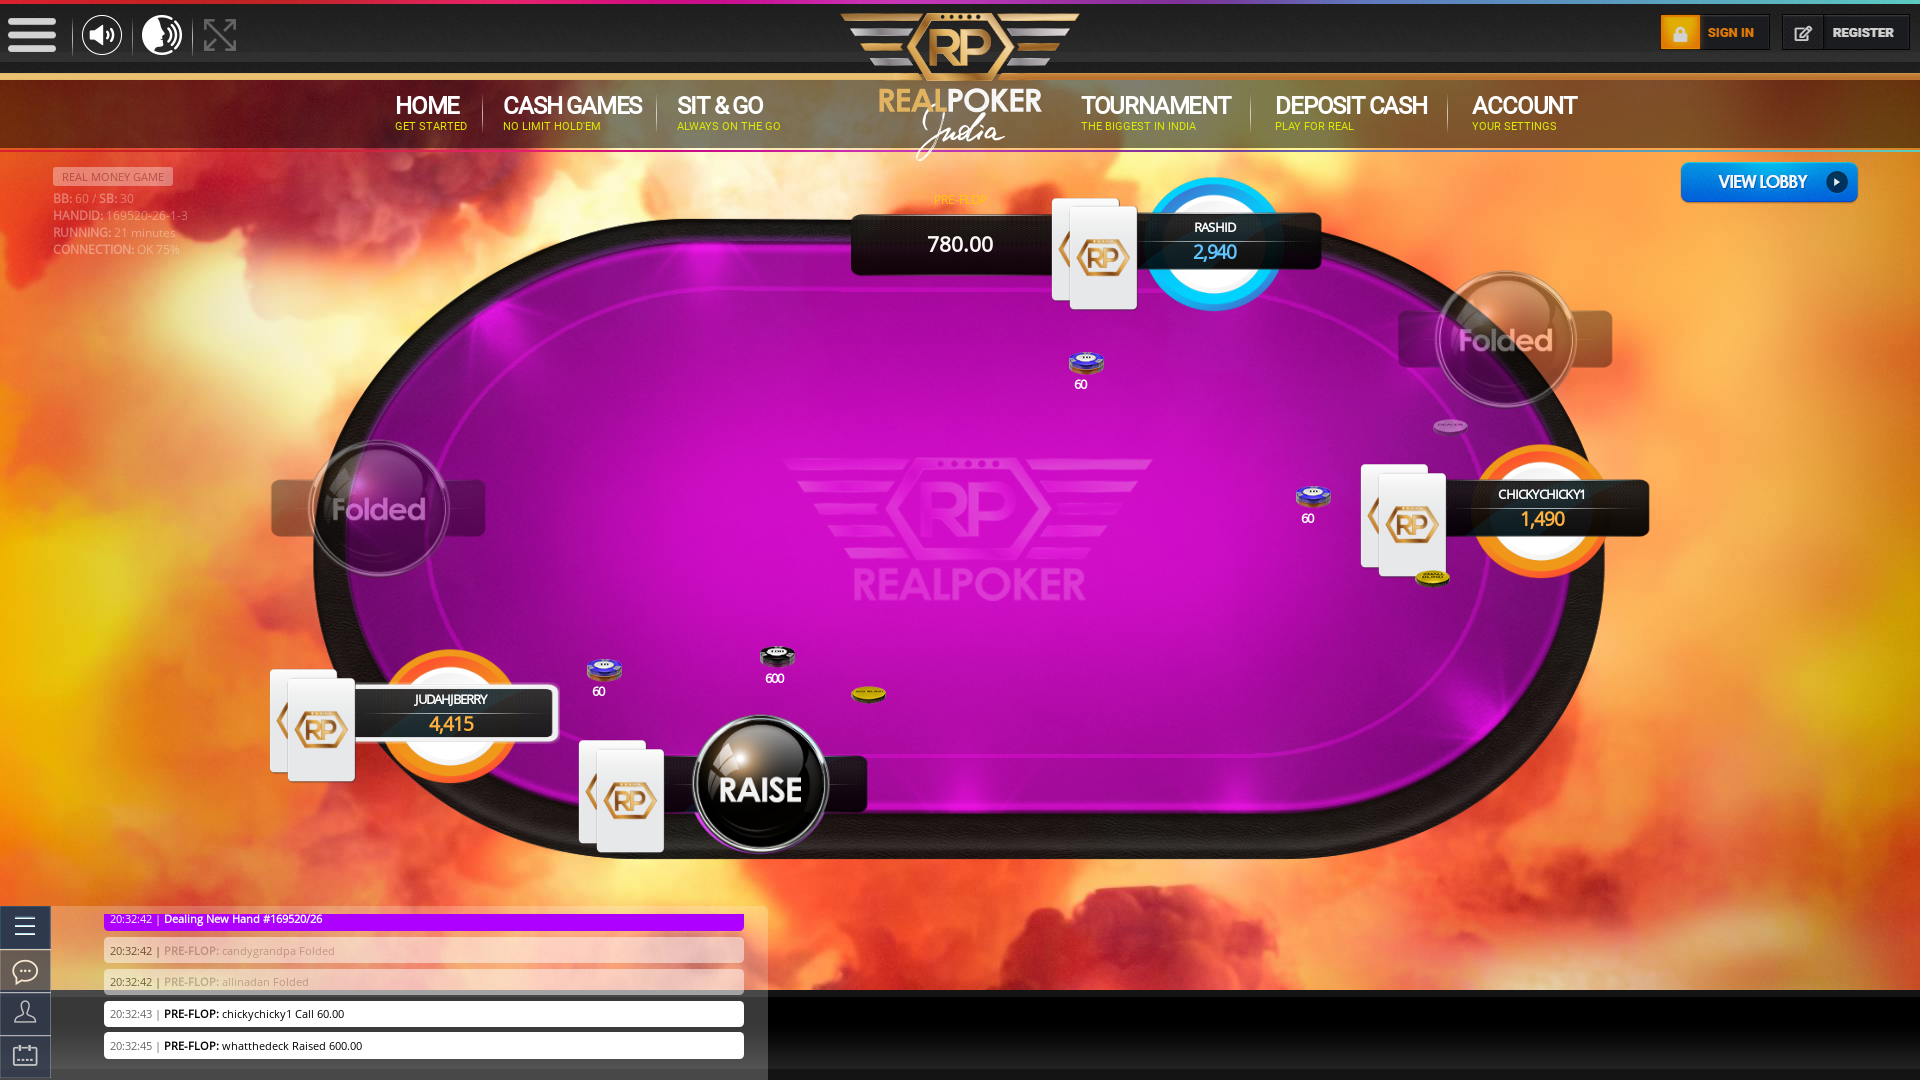 10 player texas holdem table at real poker with the table id 169520